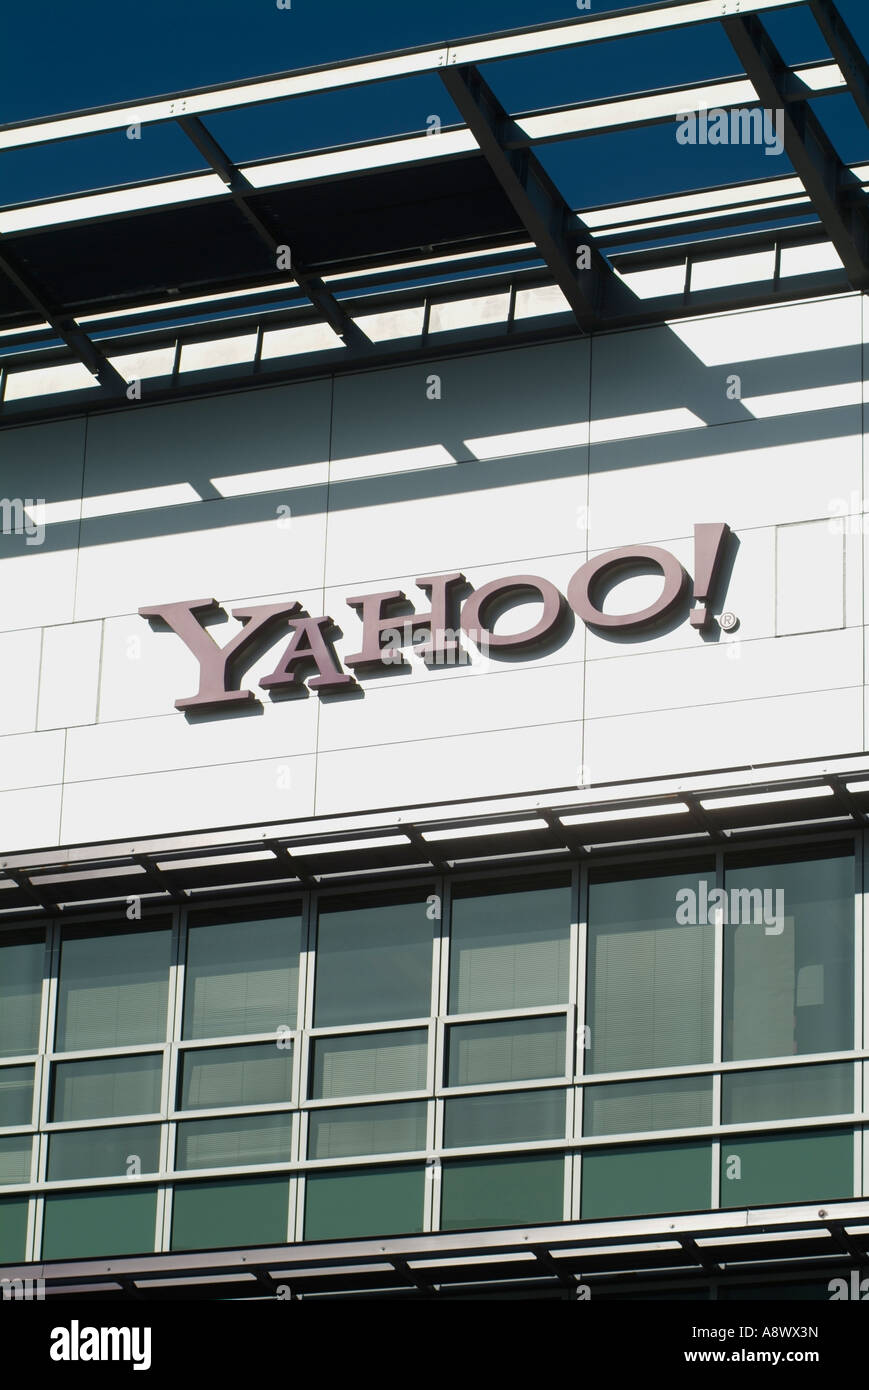 Headquarters for building for Yahoo Inc in Sunnyvale CA Photo by Chuck Nacke - Stock Image